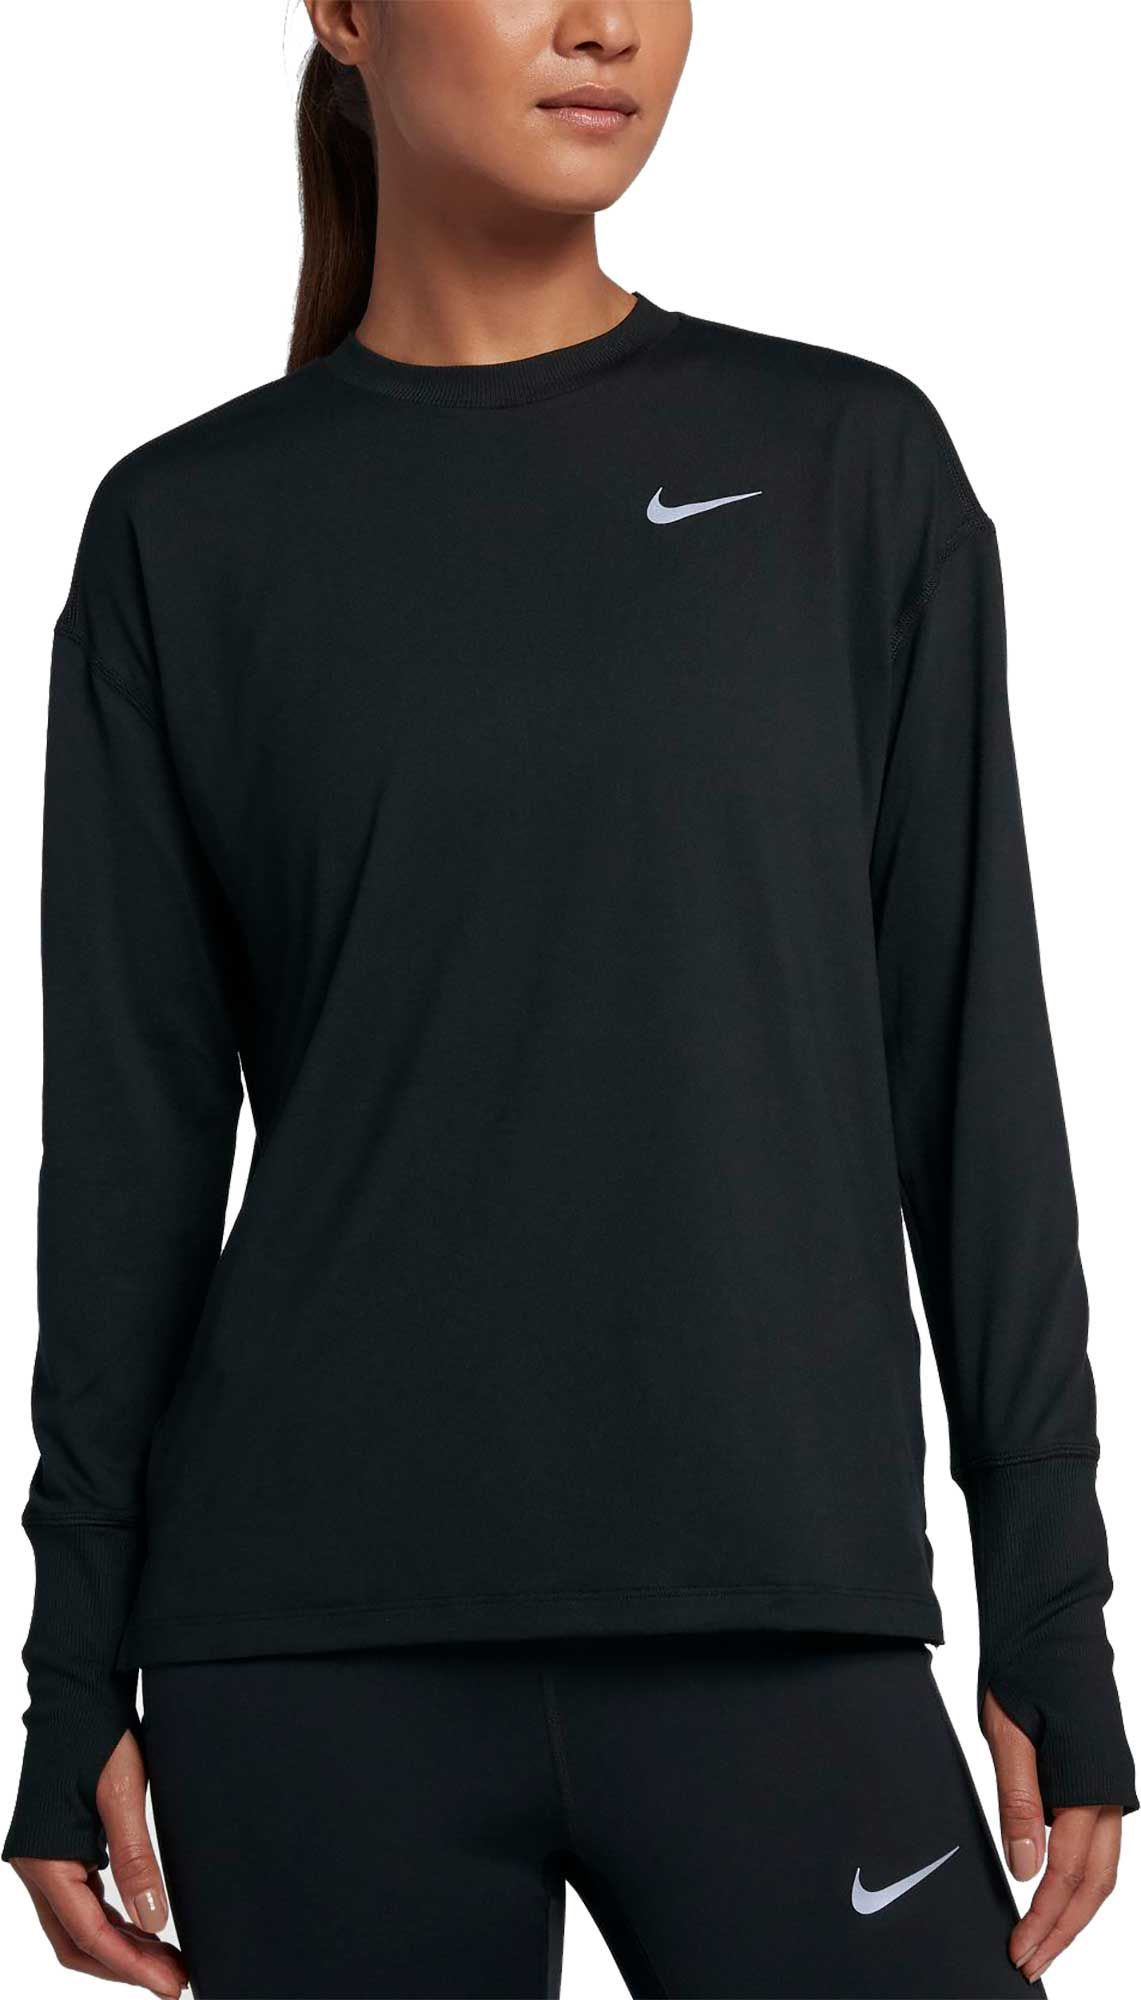 afae4aac Nike Women's Element Long Sleeve Running Shirt in 2019 | Products ...